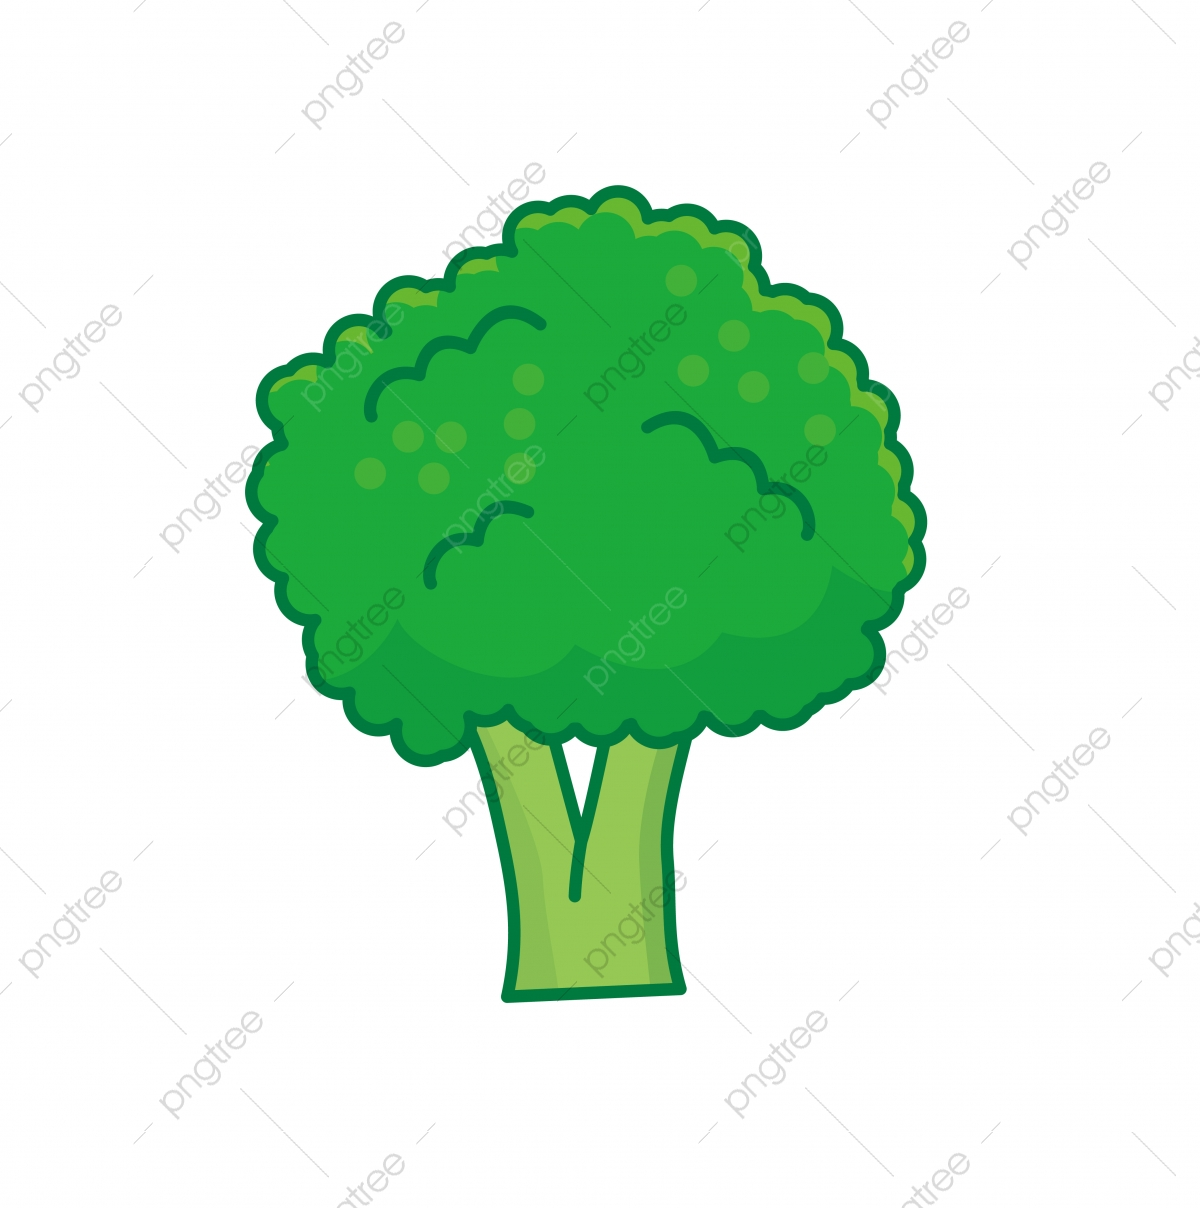 23+ Broccoli Vector Illustration